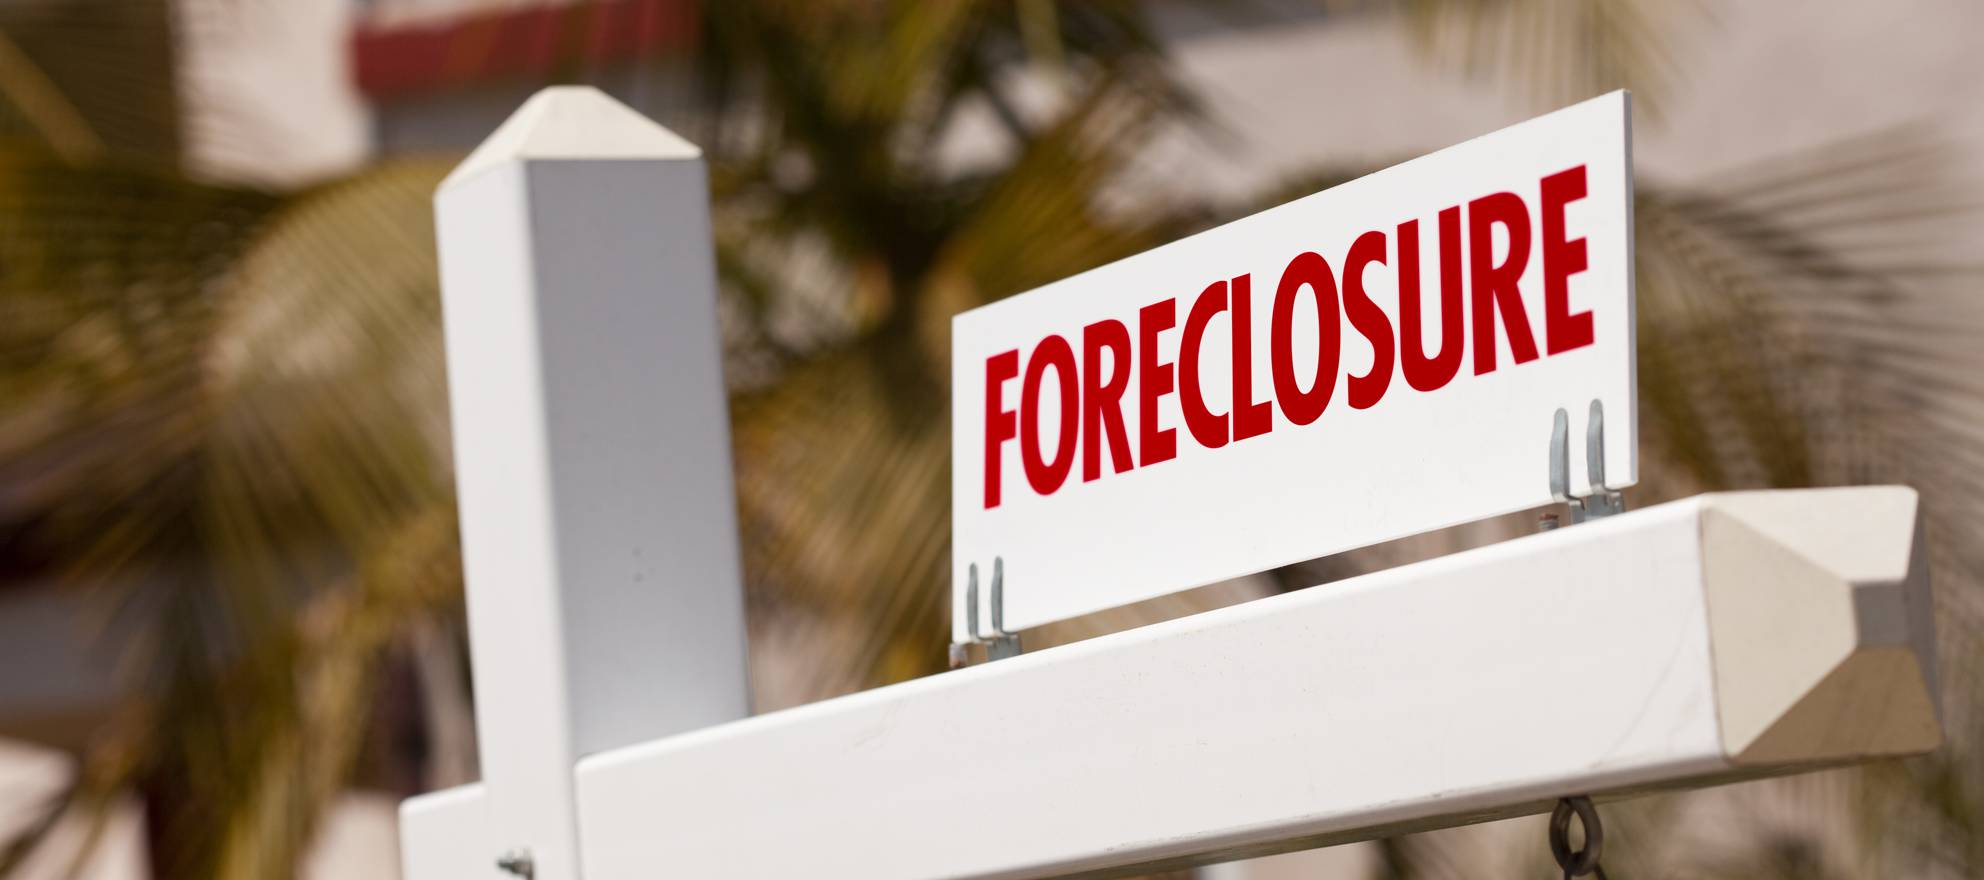 Deutsche bank racial discrimination foreclosed property suit